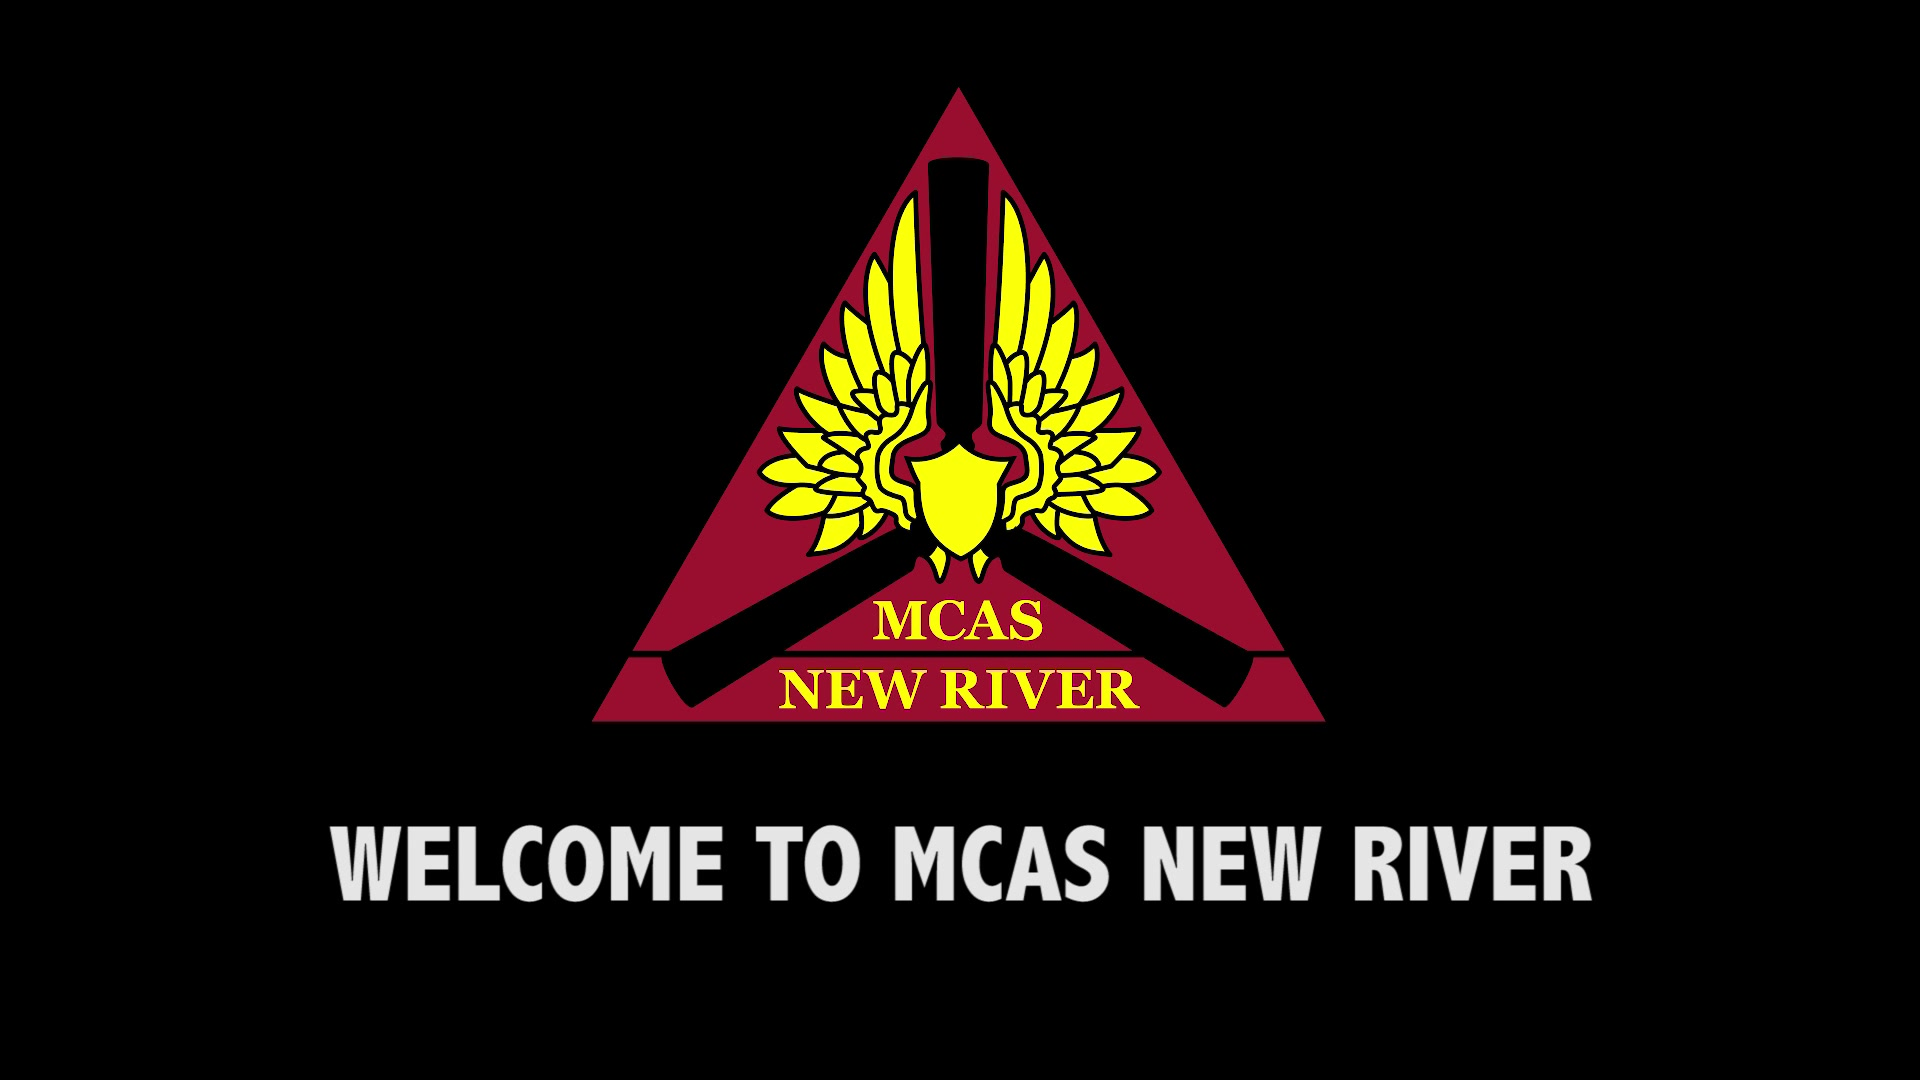 This video features of visual tour of Marine Corps Air Station New River to acquaint incoming service members and authorized visitors with the many amenities, programs and services it has to offer.